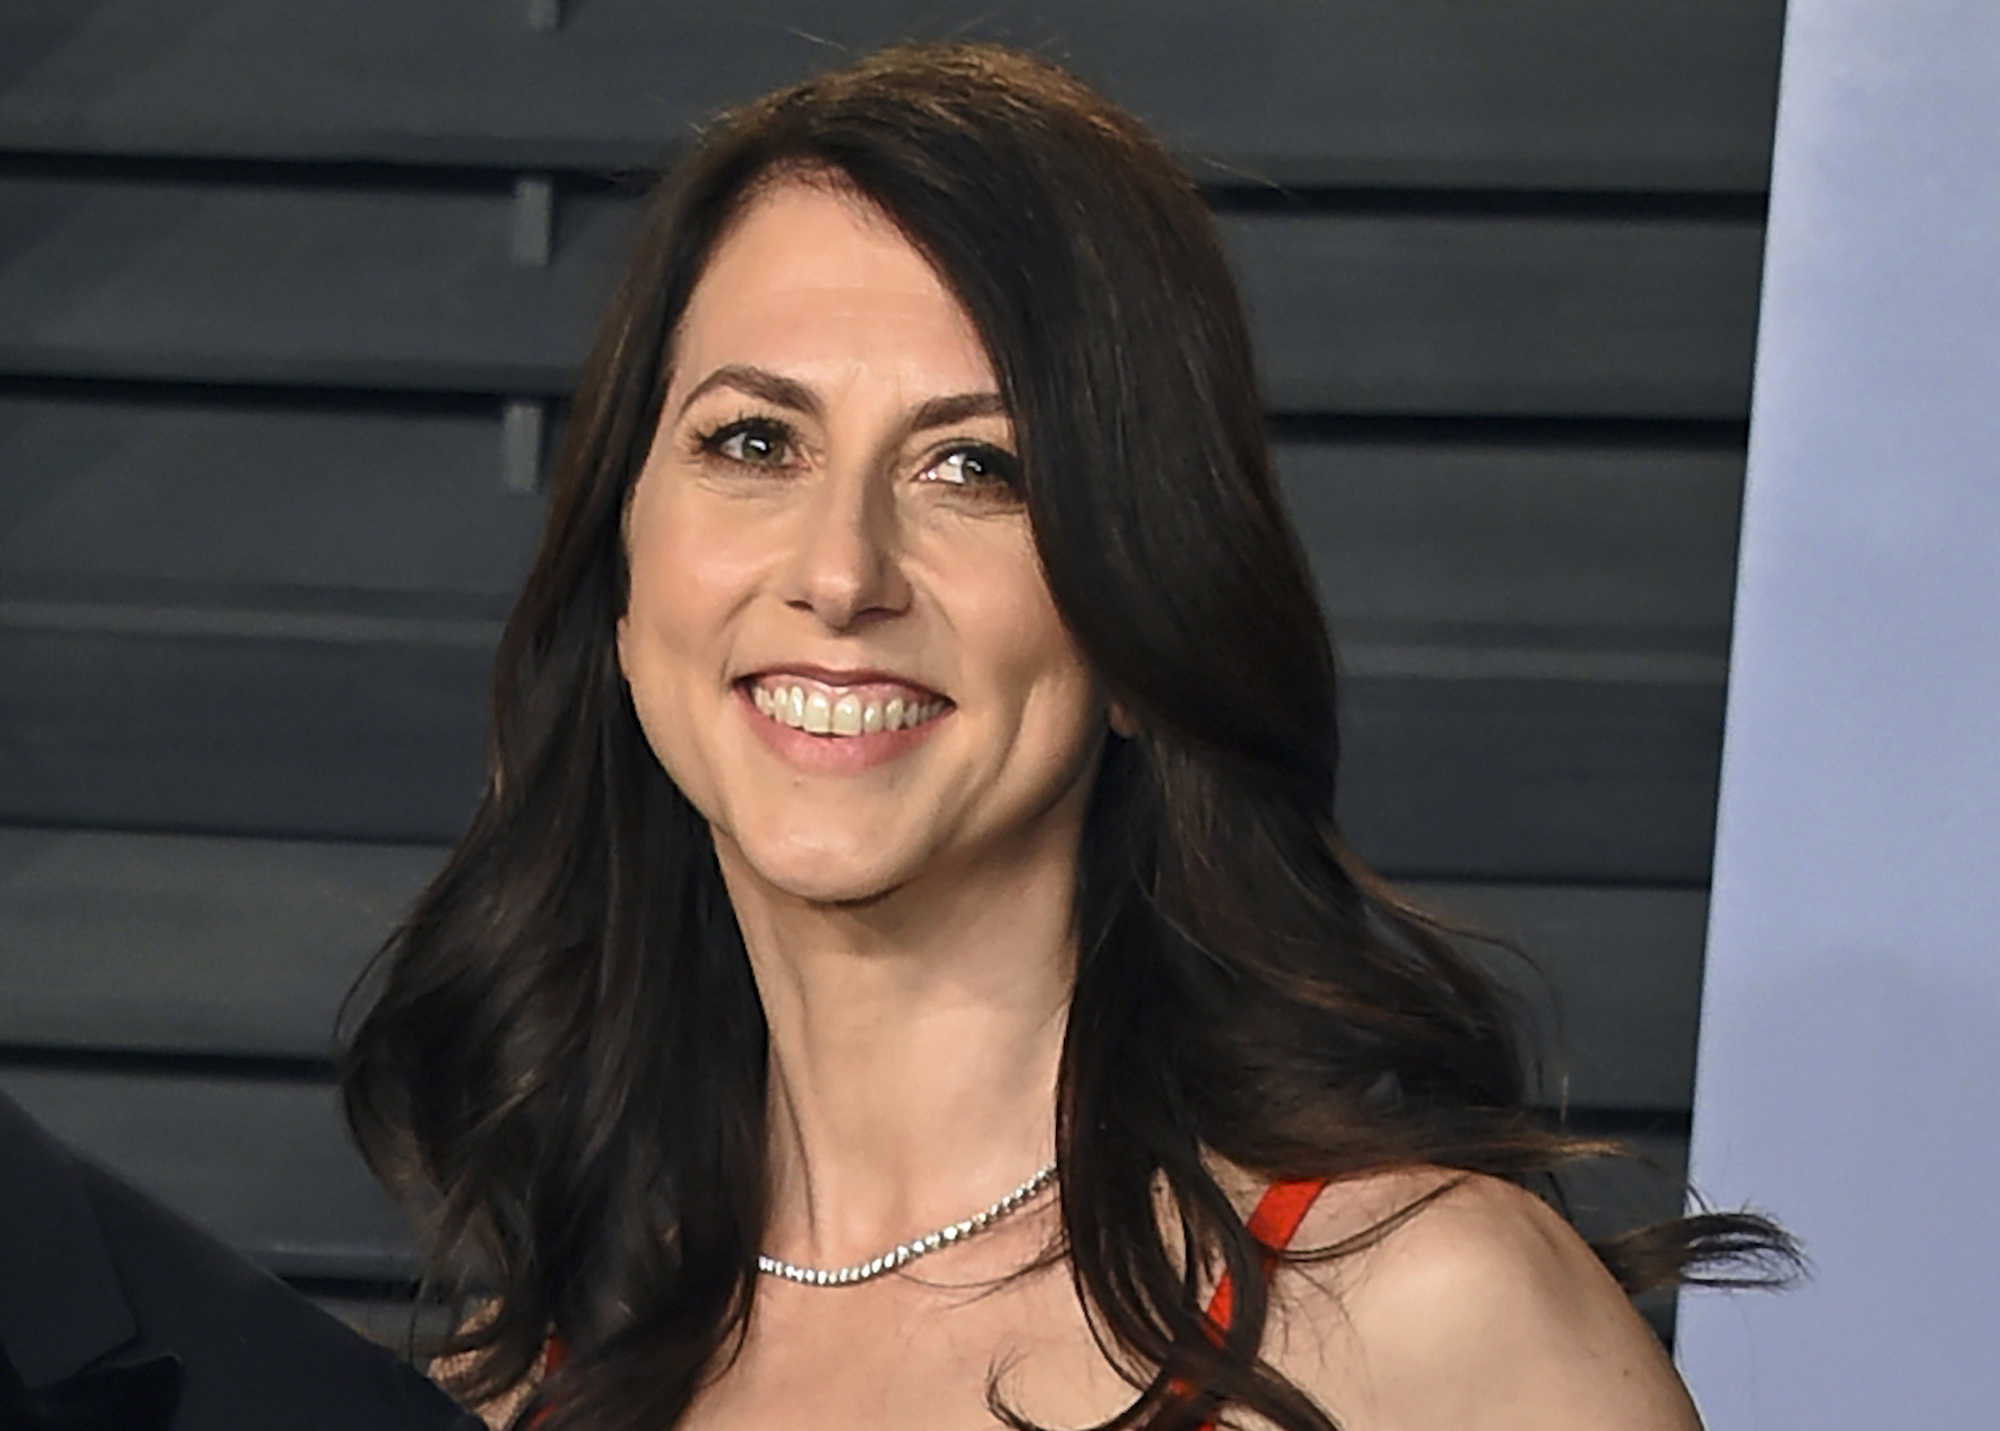 MacKenzie Scott, ex-wife of Amazon founder